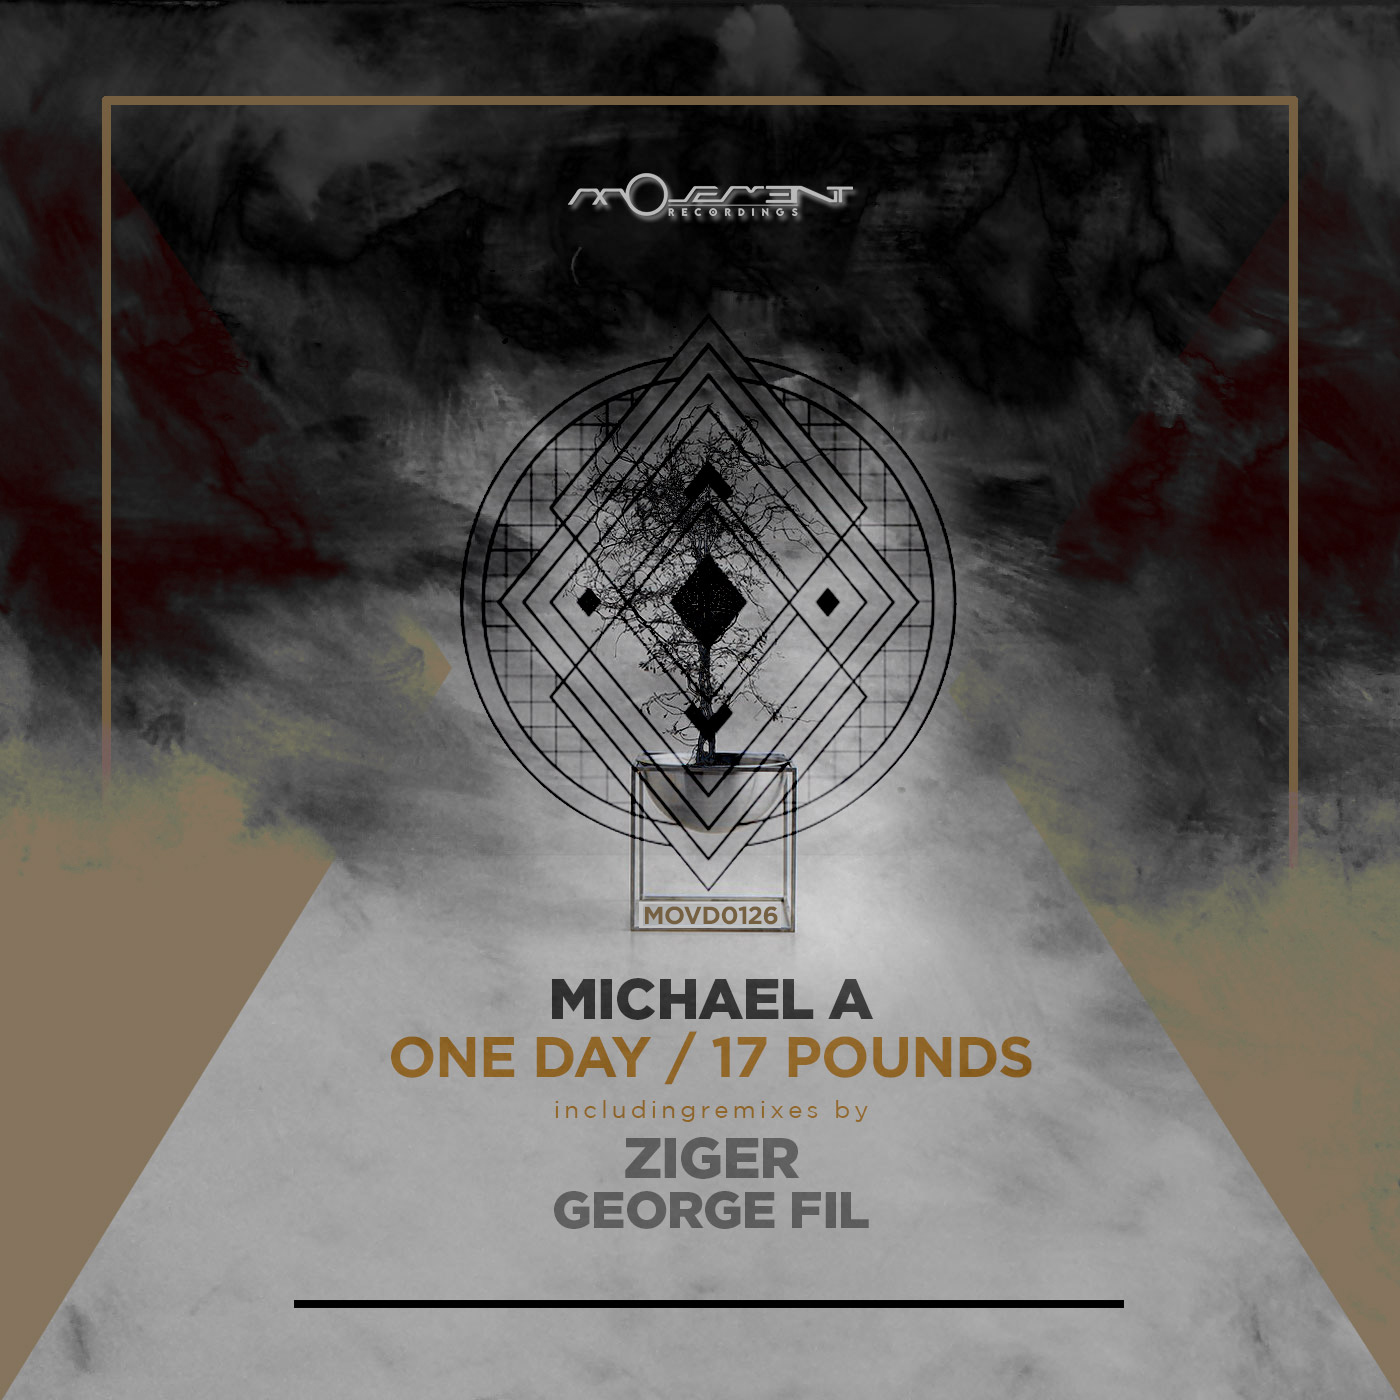 Michael A - One Day / 17 Pounds